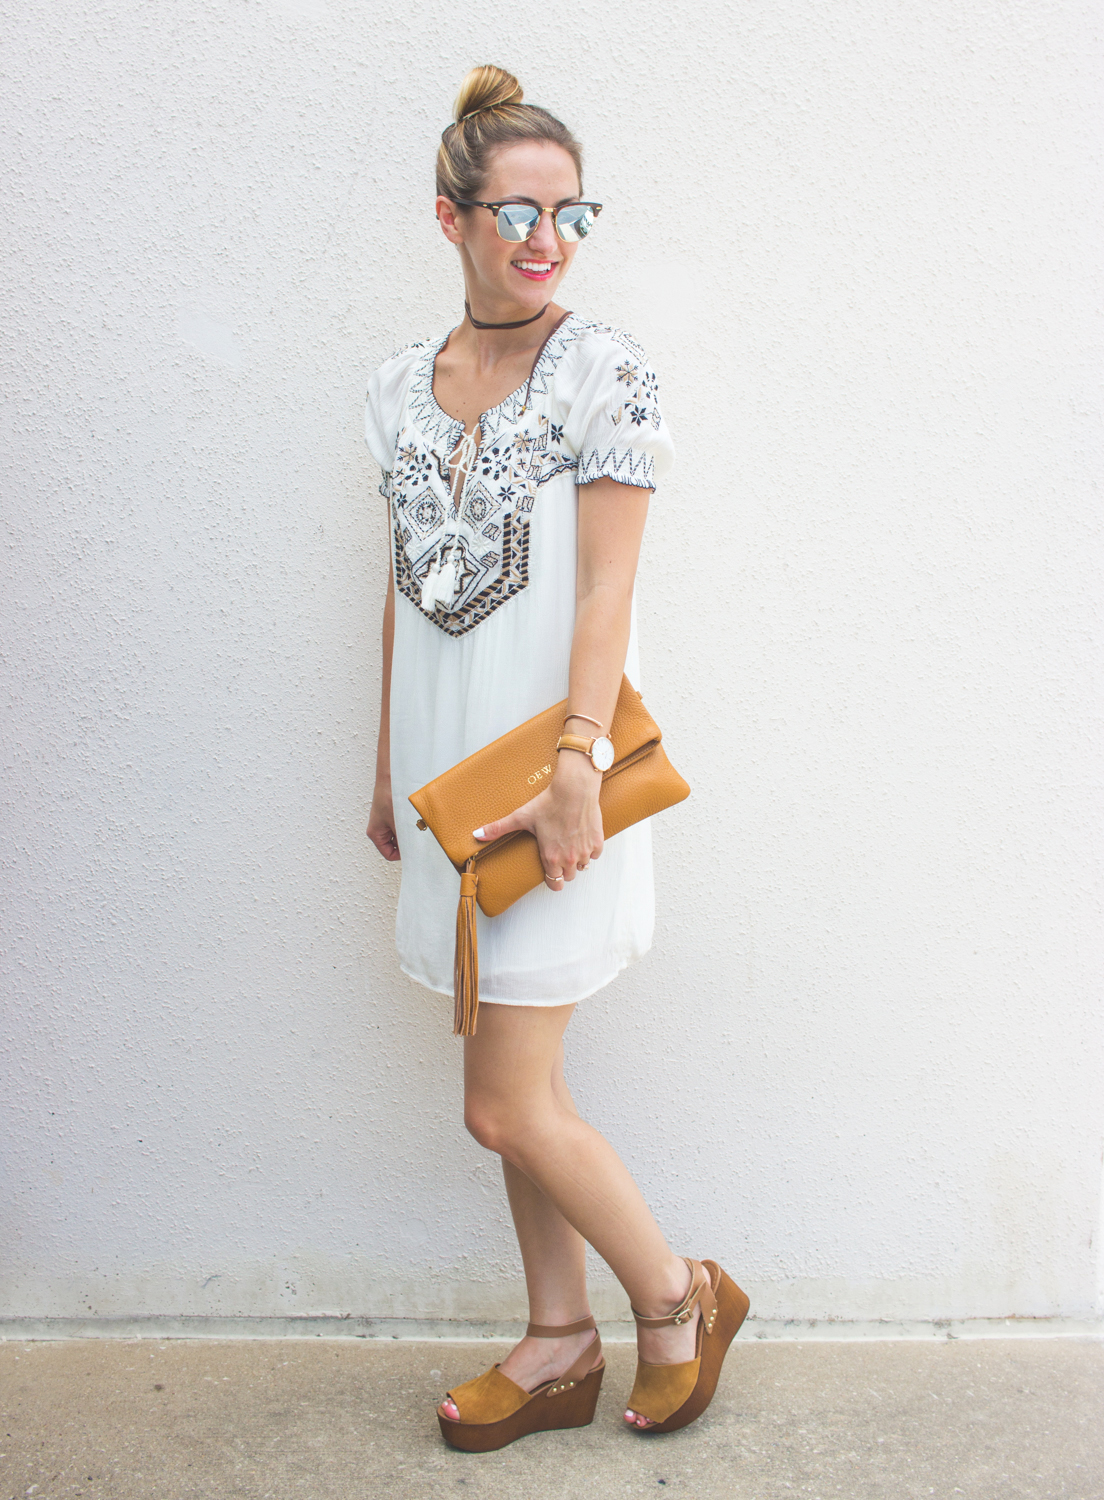 livvyland-blog-olivia-watson-austin-texas-fashion-blogger-abercrombie-and-fitch-embroidered-off-shoulder-dress-seychelles-platform-wedge-sandals-boho-outfit-ray-ban-reflective-clubmaster-summer-outfit-4